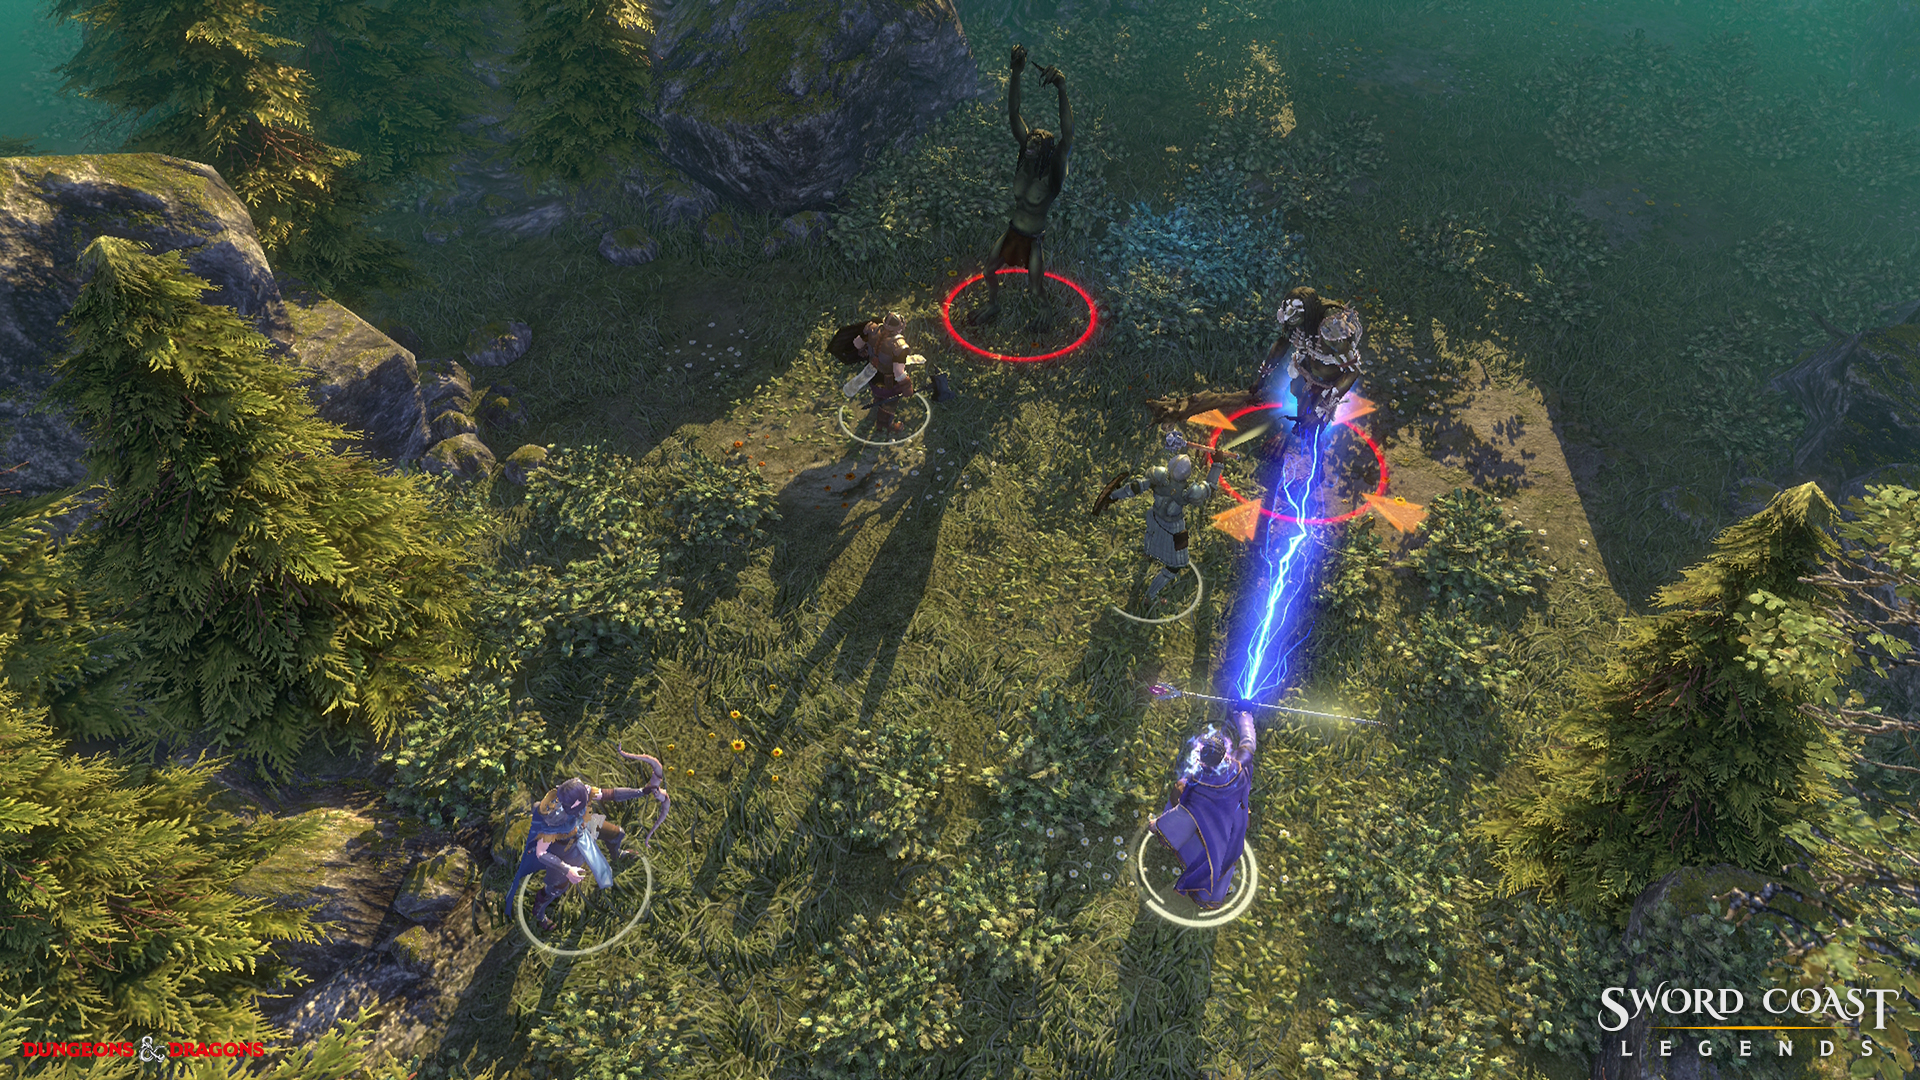 Sword Coast Legends image 3